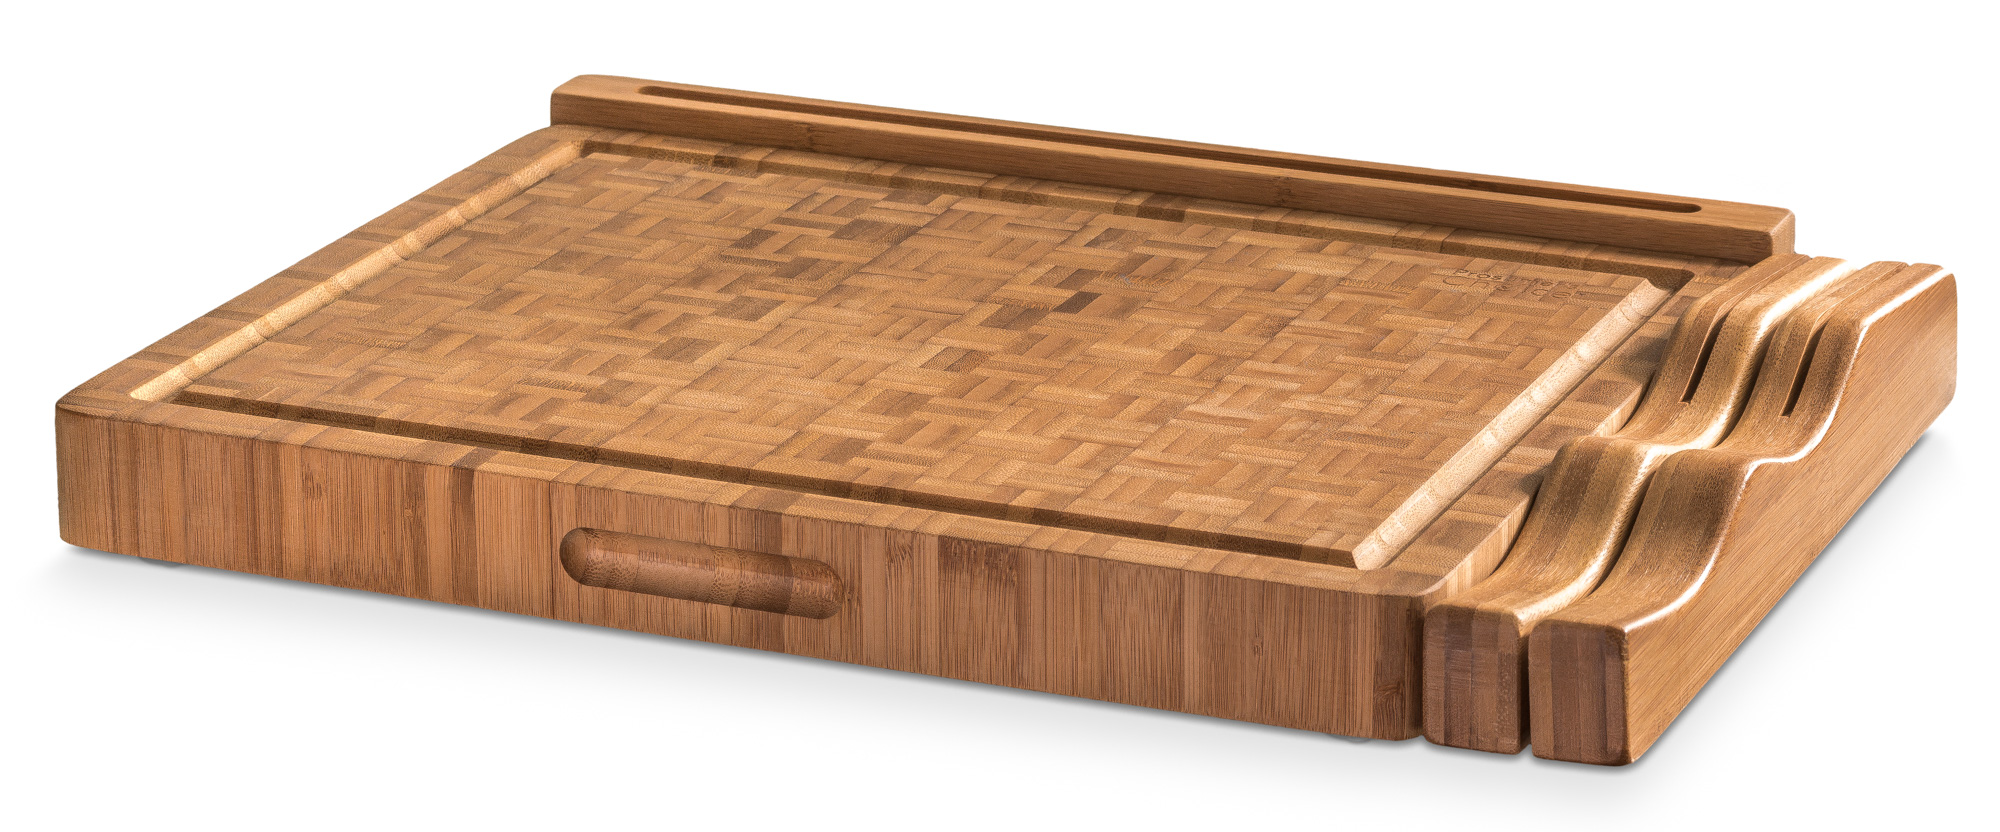 End Grain Bamboo Cutting Board Workstation With Juice Trap, Multiple Knife  Slots And Built In Tablet/iPad/Smartphone Recipe Holder   15inch